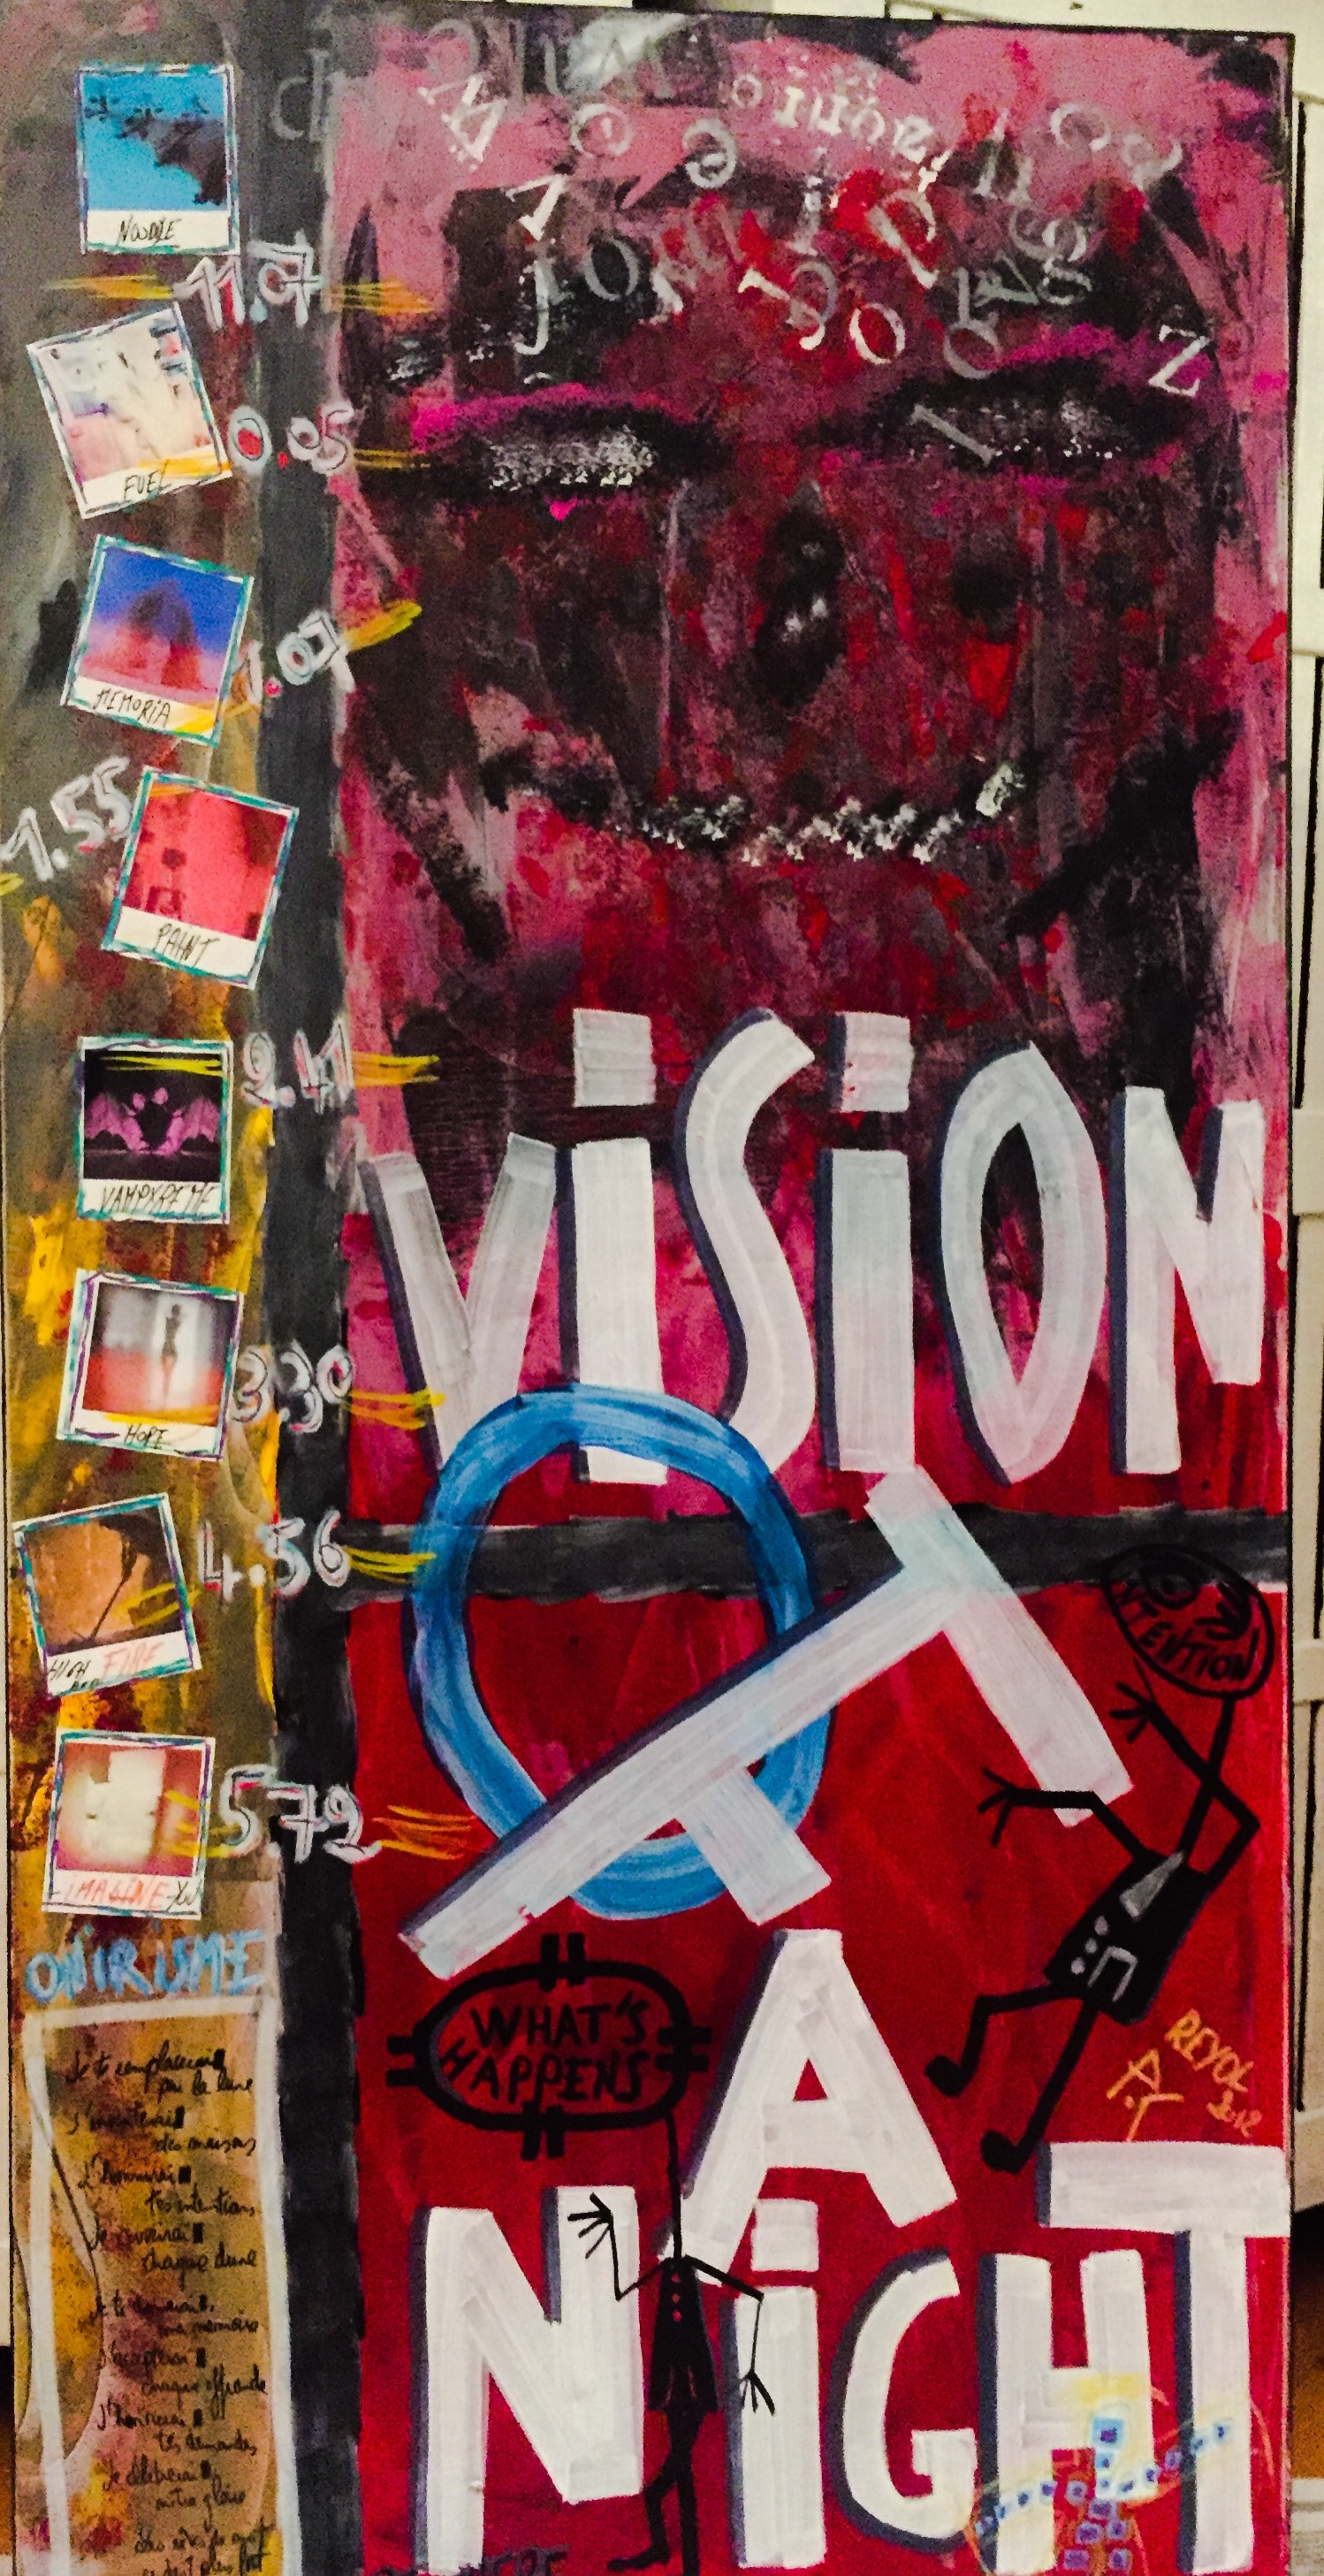 Vision of